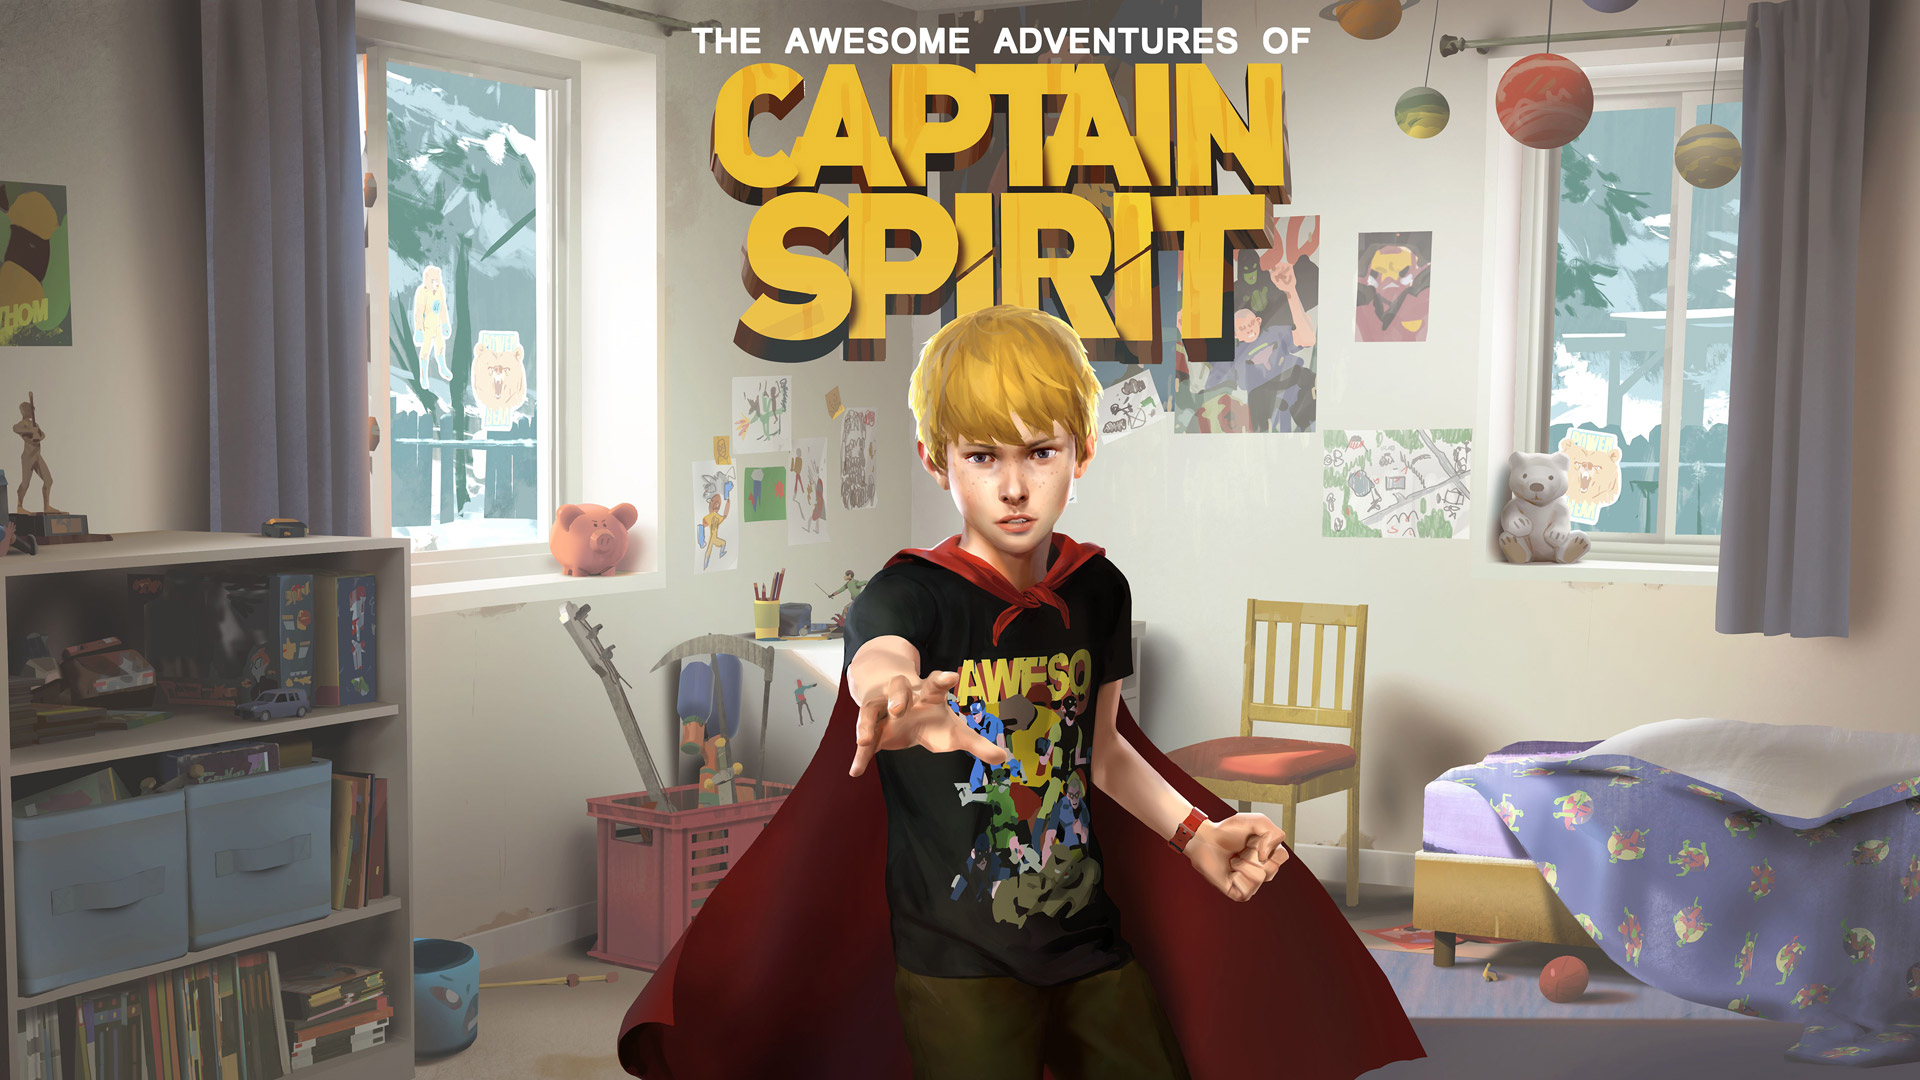 Free The Awesome Adventures of Captain Spirit Wallpaper in 1920x1080